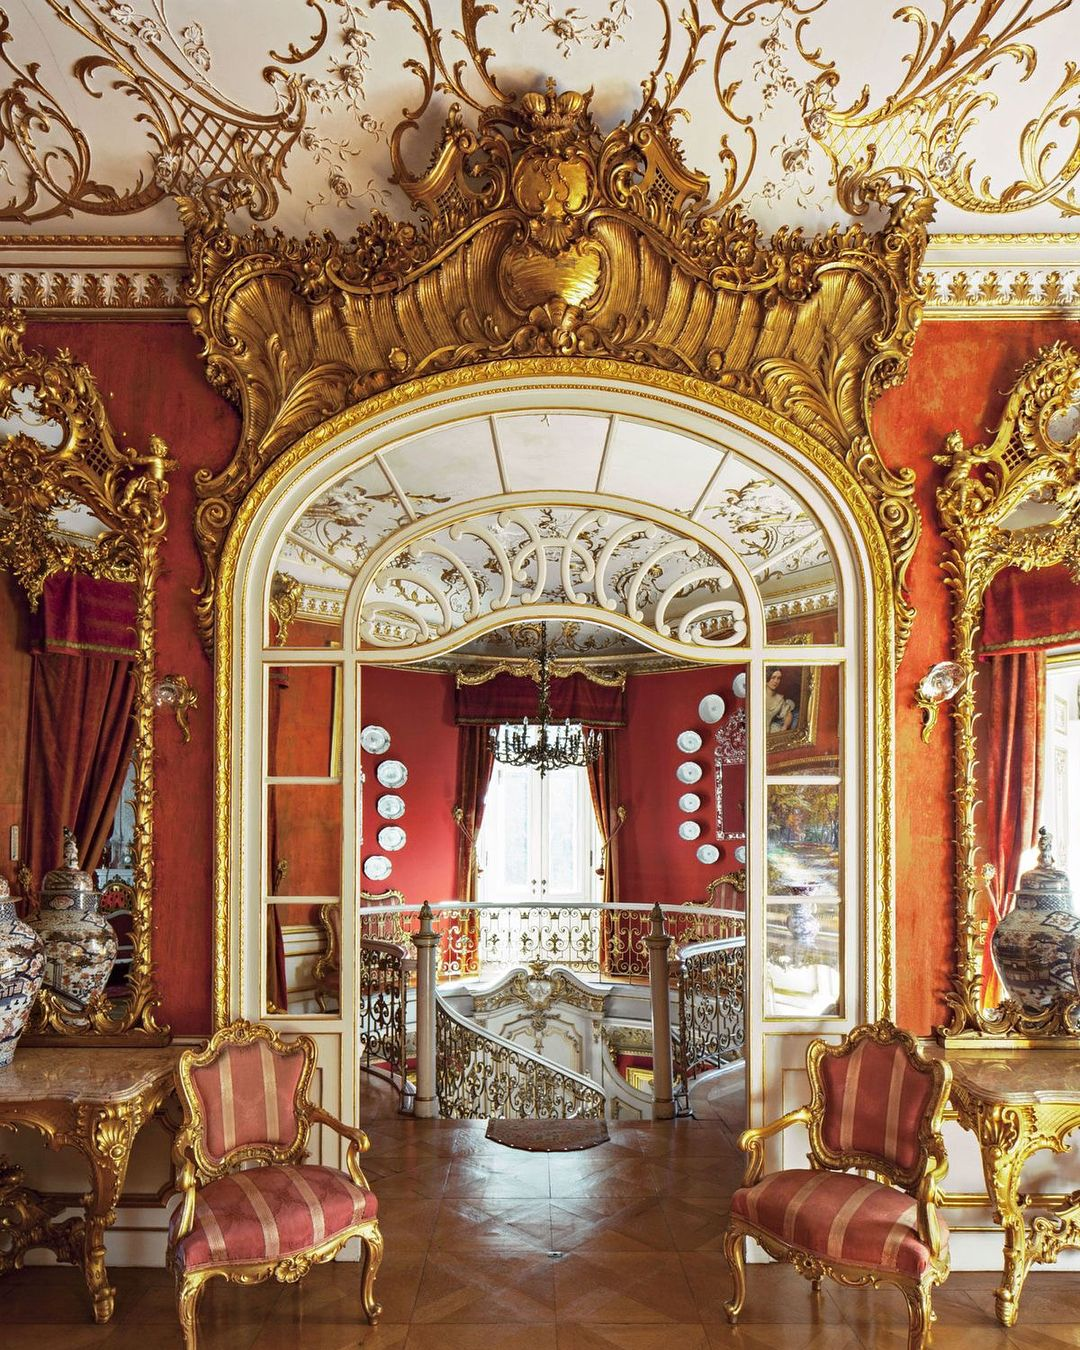 Thurn Und Taxis Schloss Schloss St Emmeram Estate In Germany The Thurnundtaxis Family S Country Palace Interior Royal Castles Interior Castles Interior